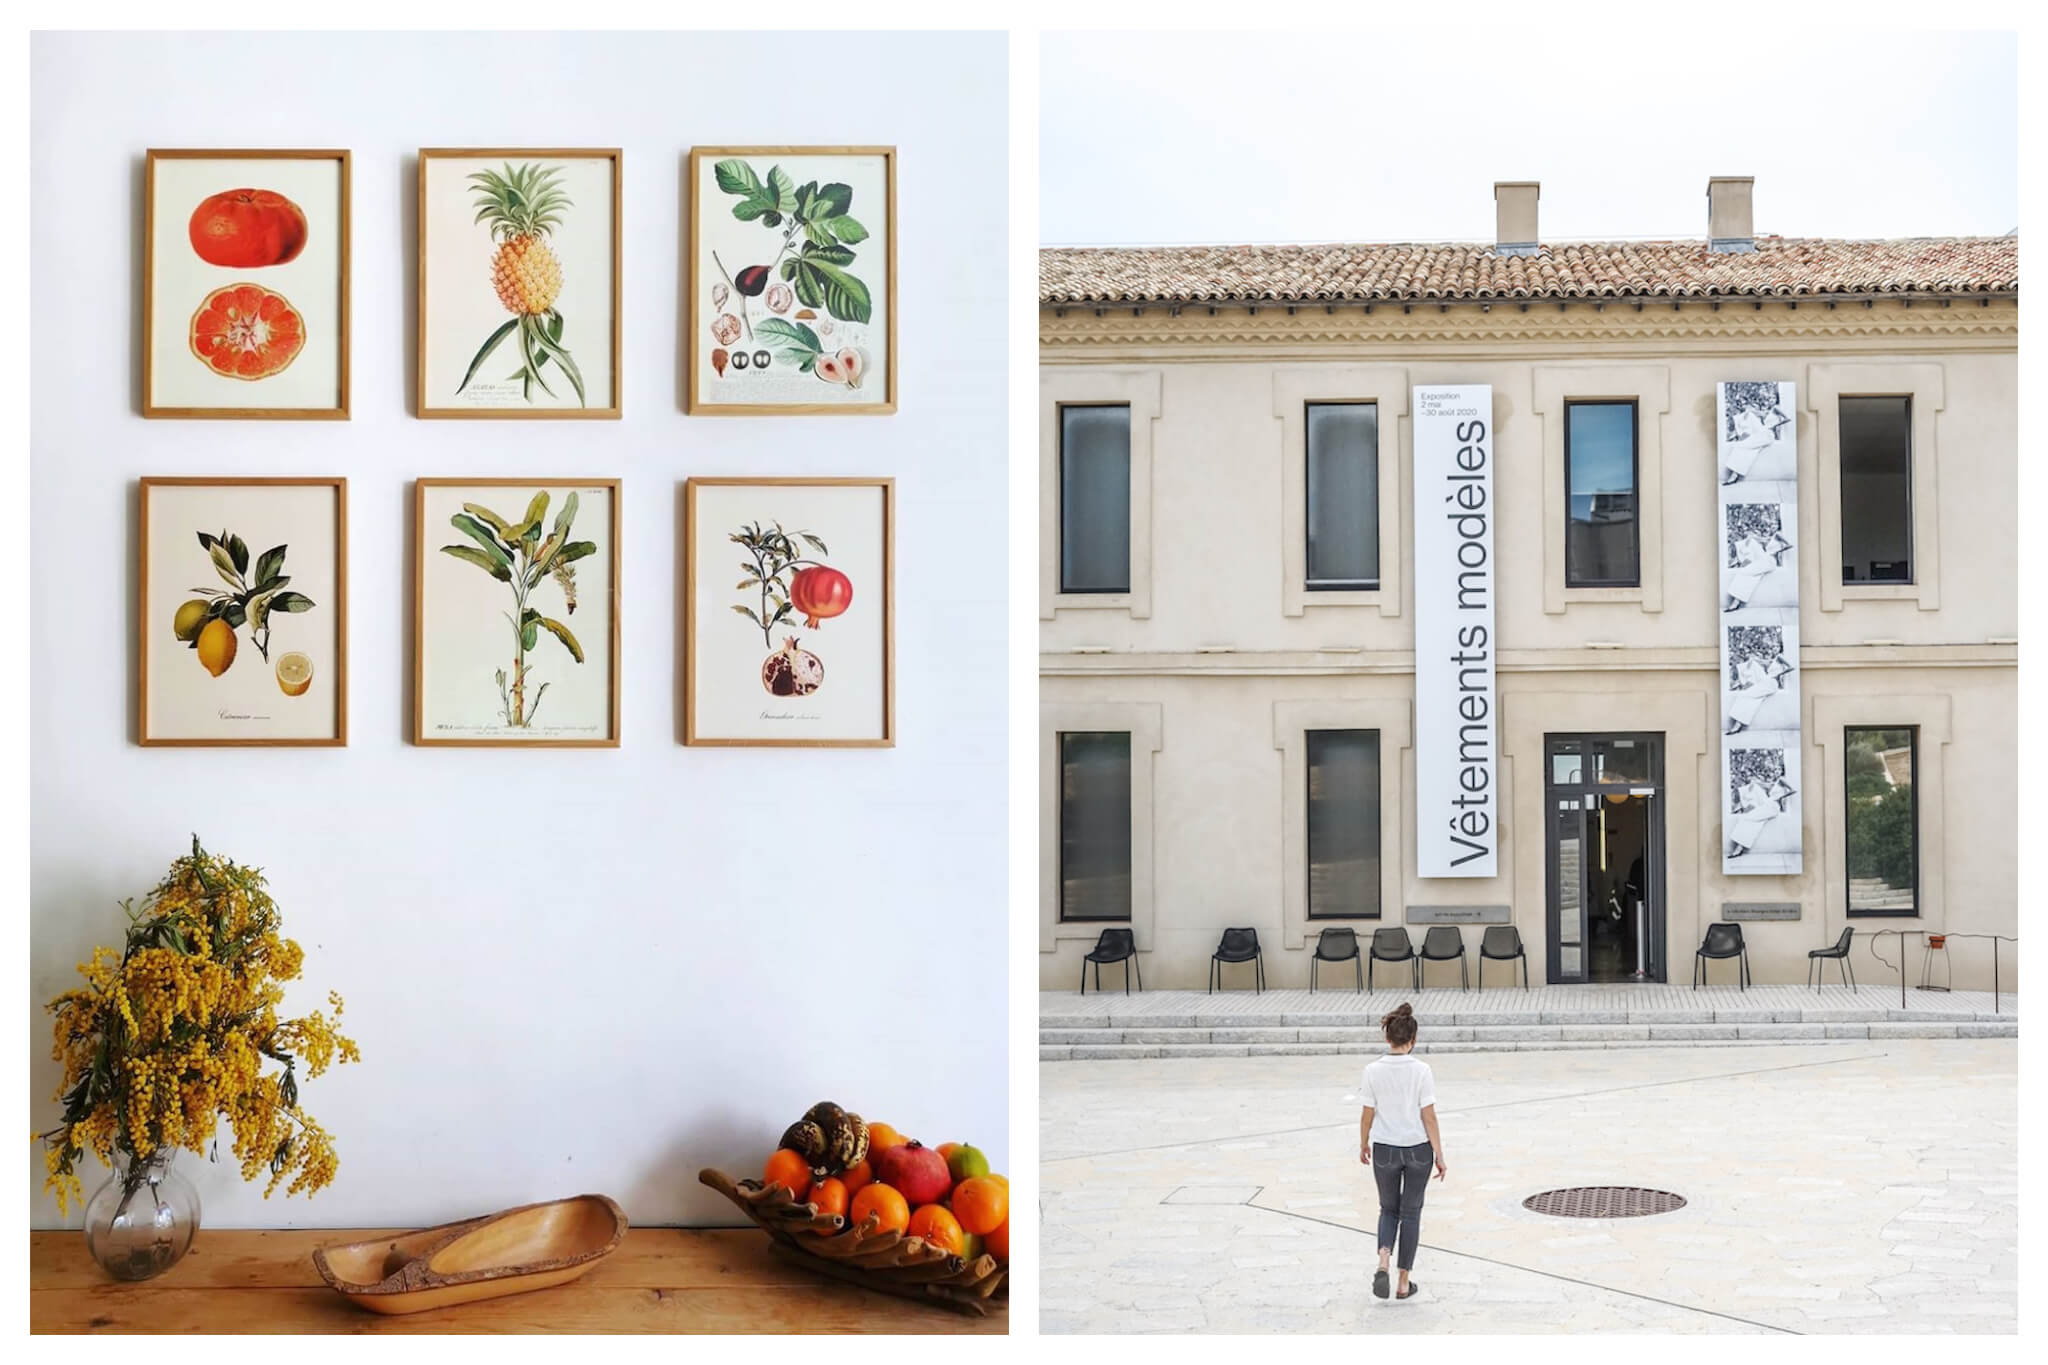 Left: a wall inside Marseille's Trois Fenêtres restaurant, decorated with six small framed watercolours of various vegetables. Underneath is a wooden table with dried flower and a bowl of fruit. Right: The outside of the MUCEM in Marseille.